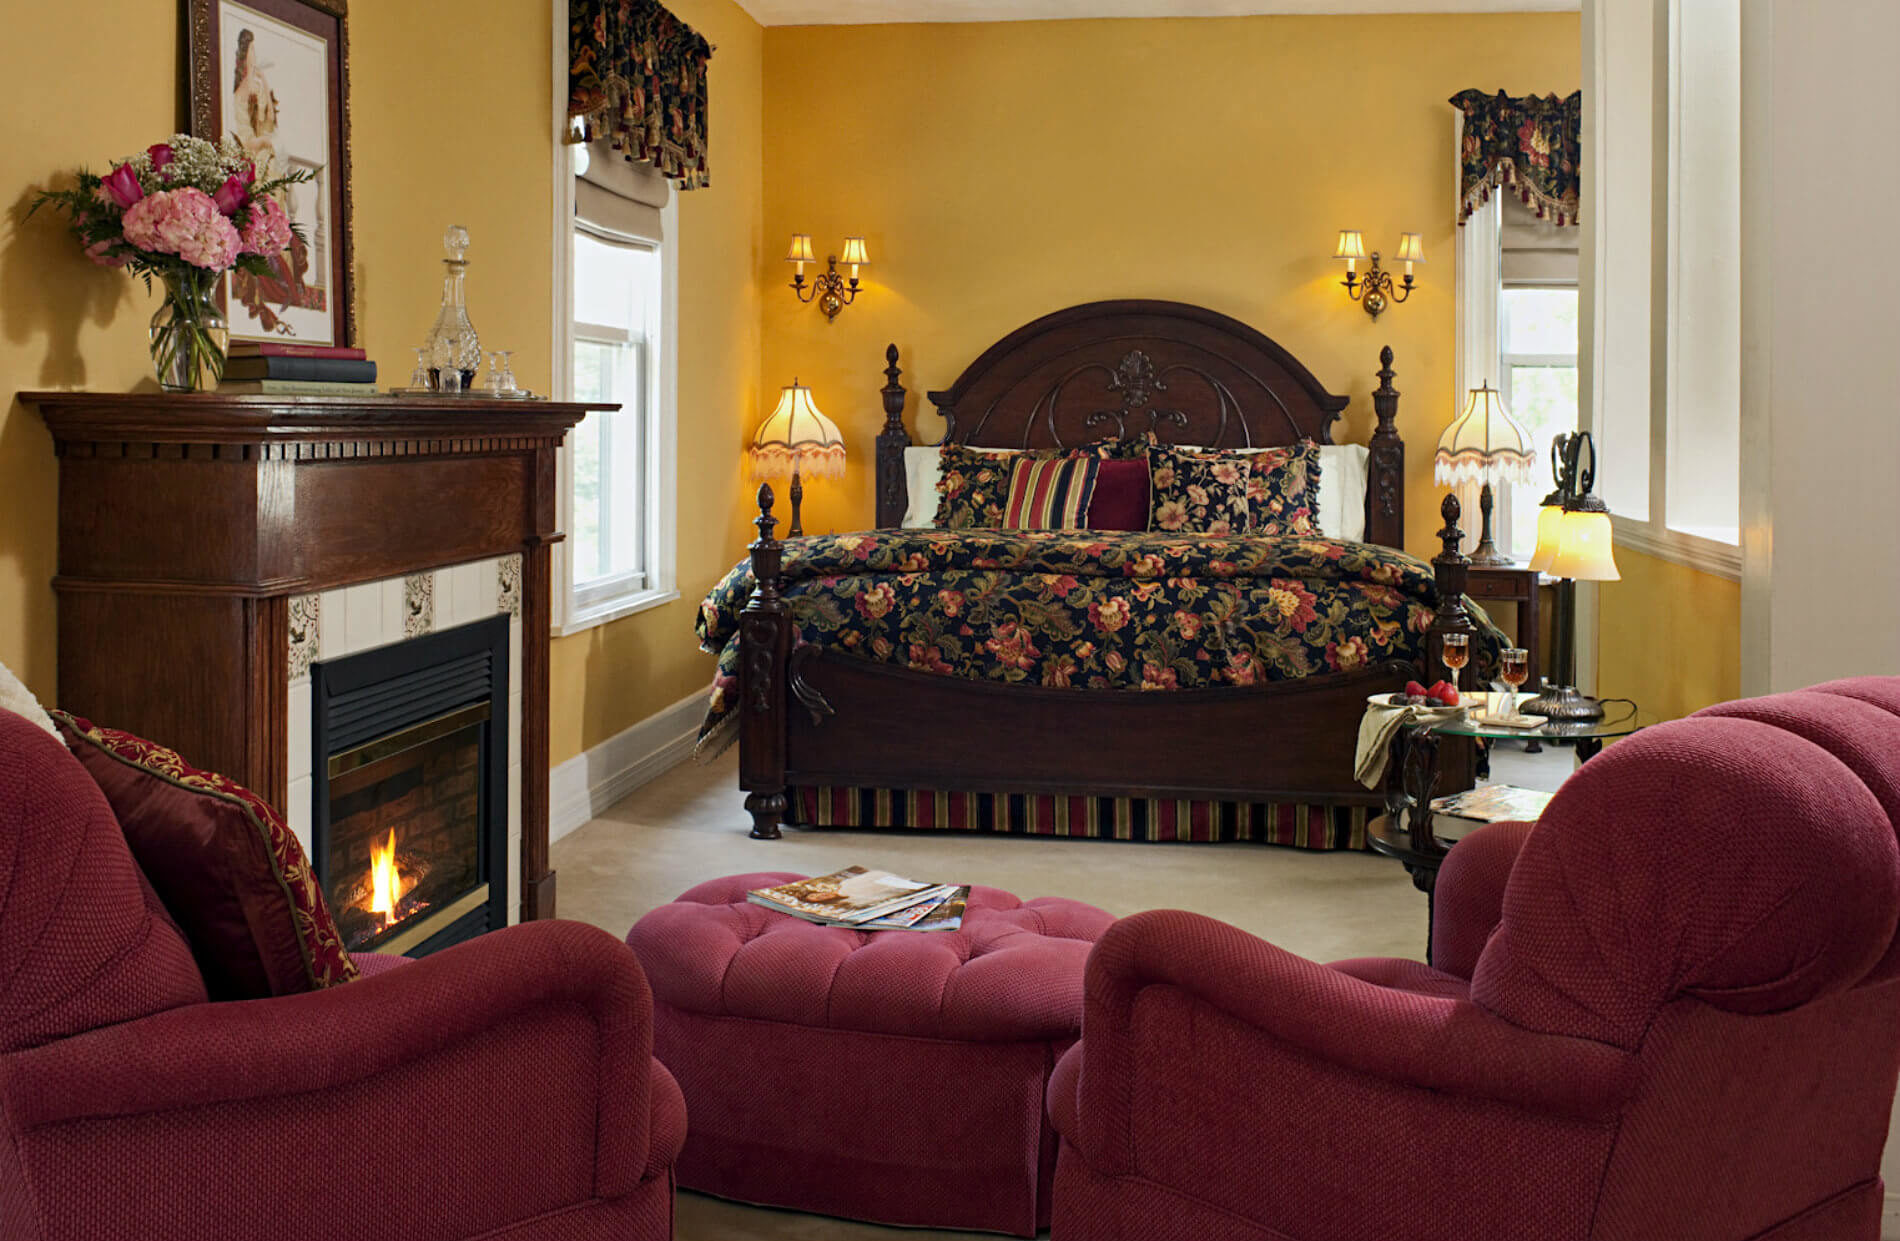 Gold walled room with large wooden bed with drk bedding and two red wingback chairs